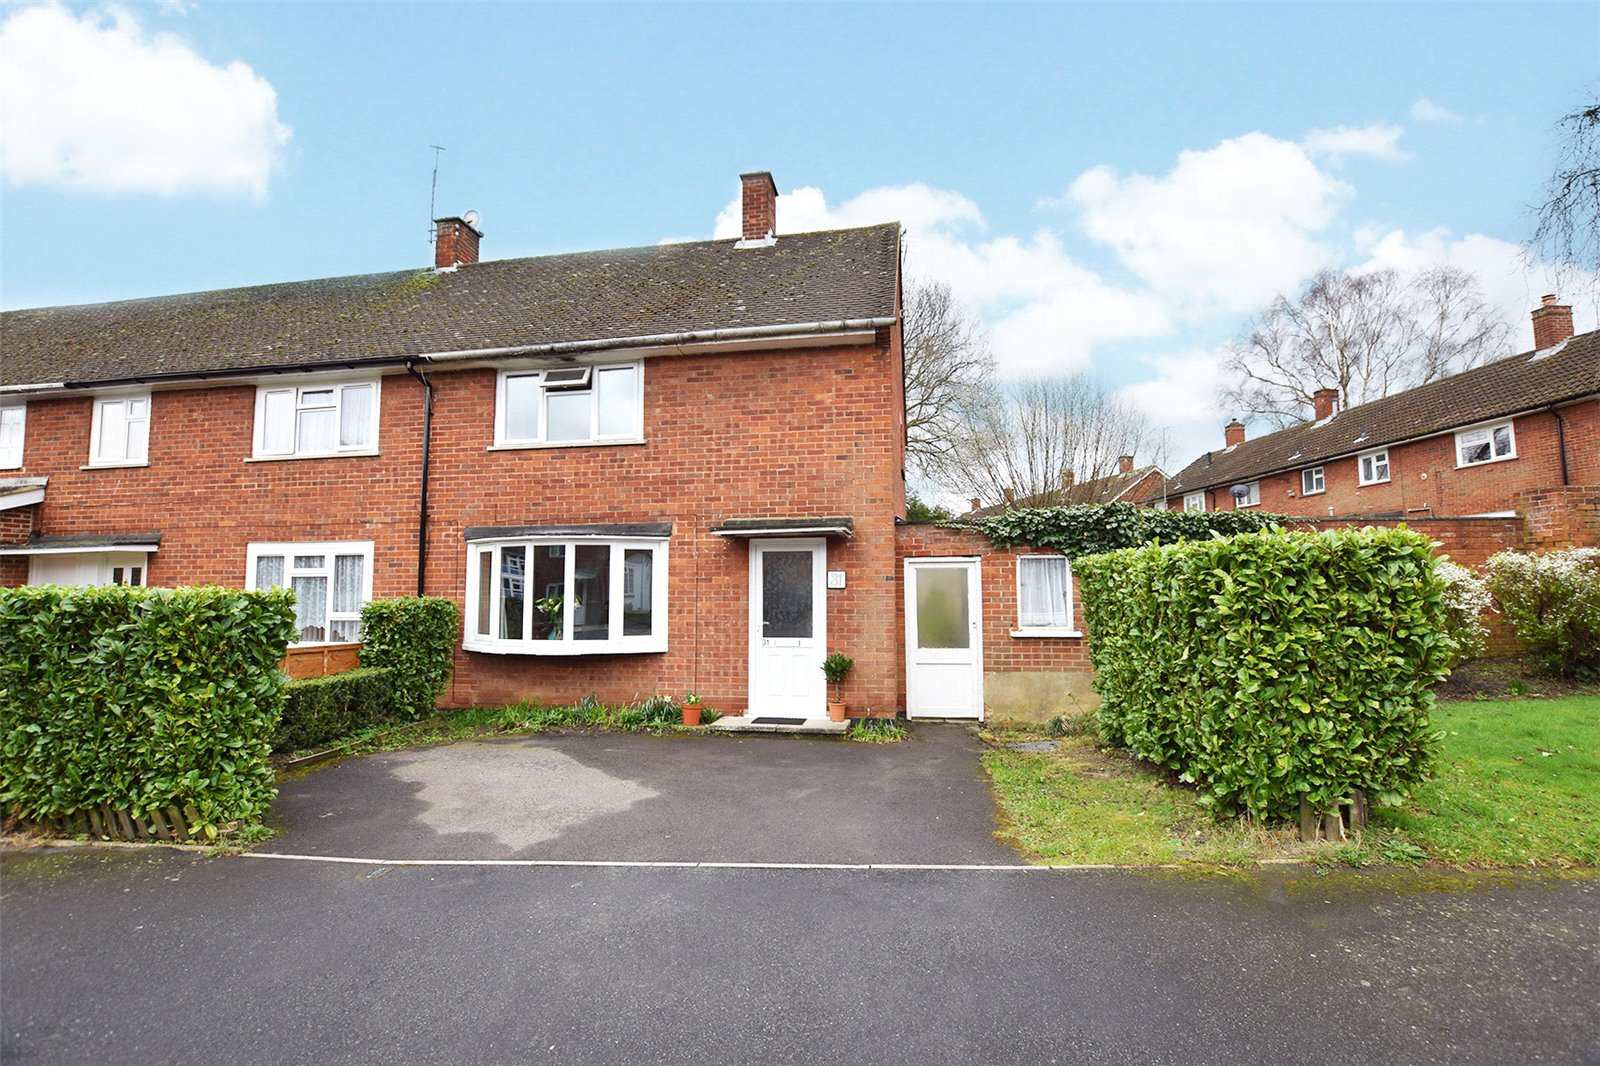 2 Bedrooms End Of Terrace House for sale in South Lynn Crescent, Bracknell, Berkshire, RG12